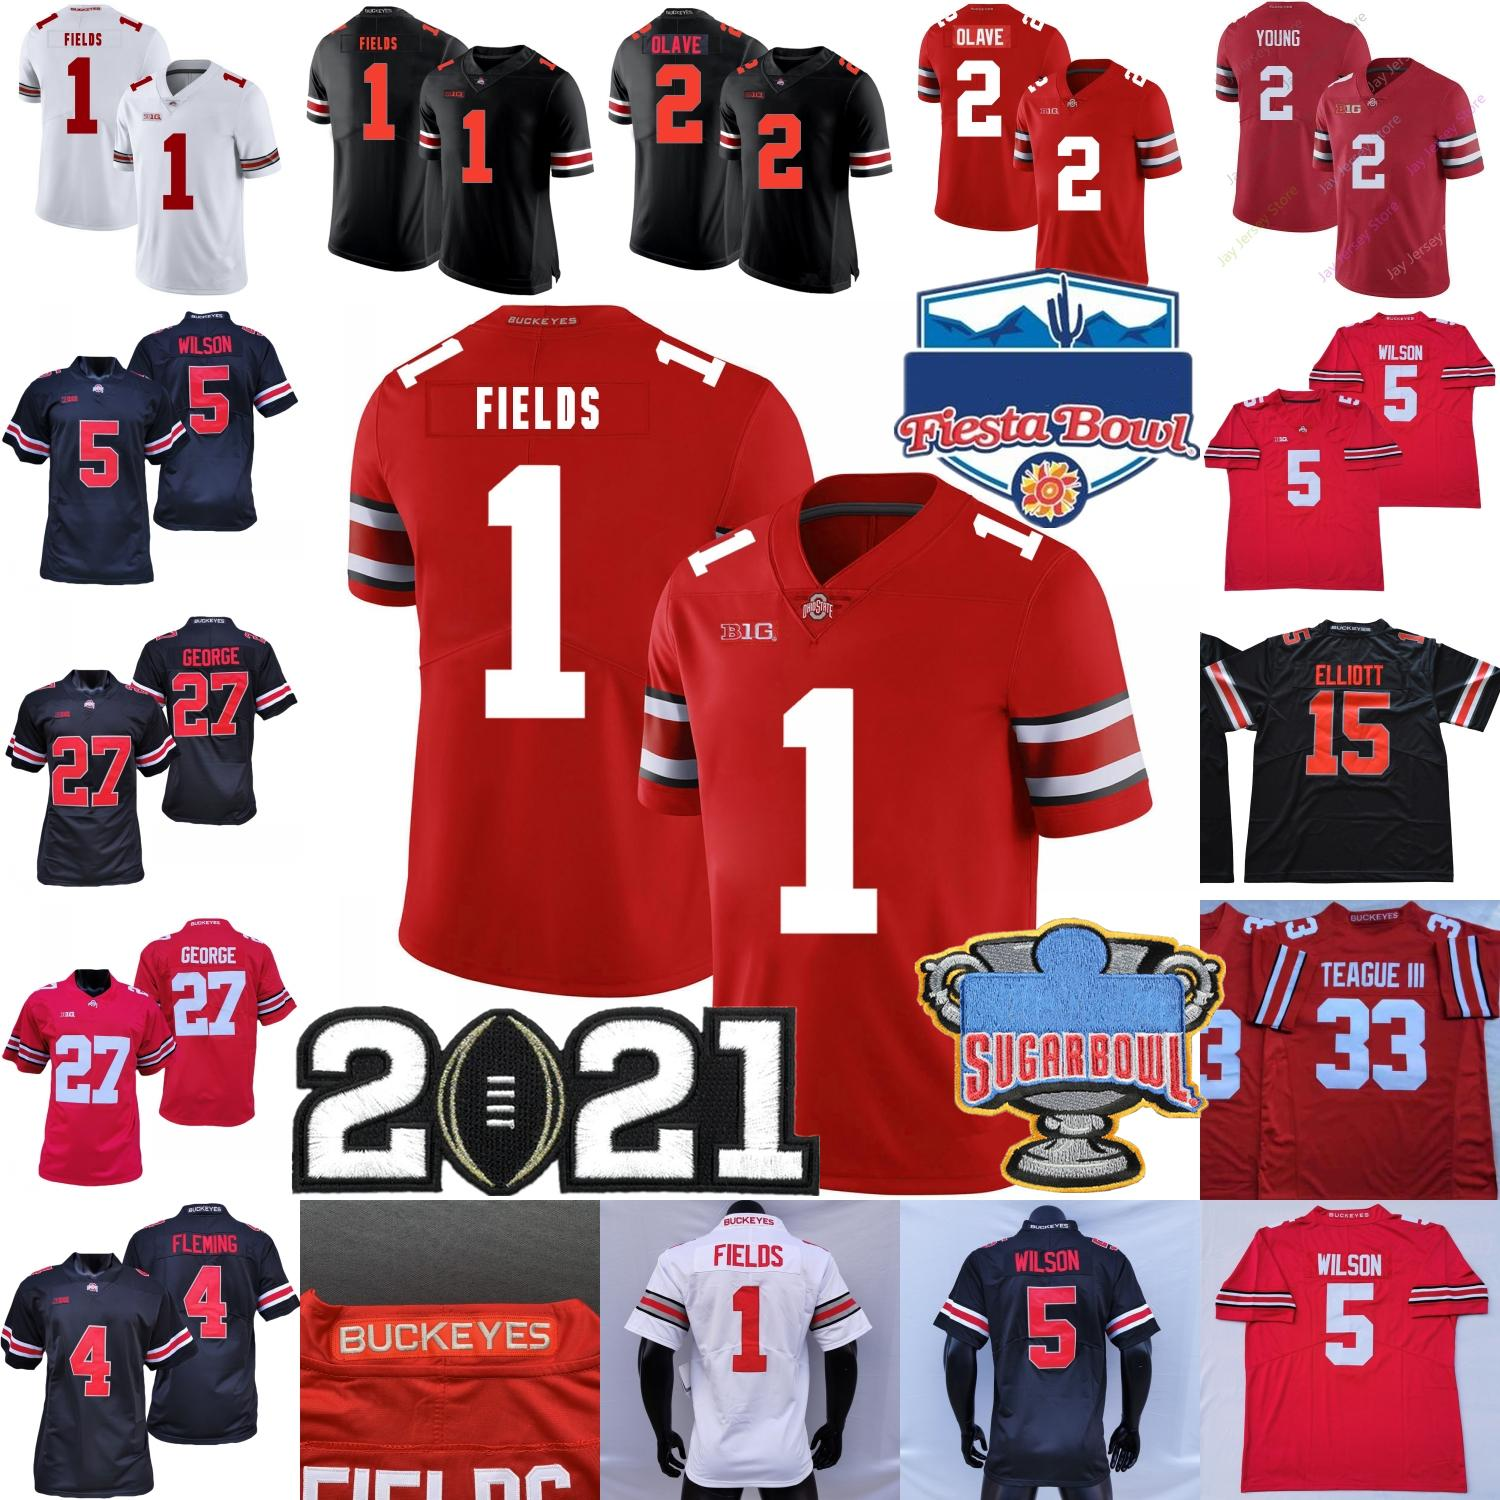 Nouveau 2021 Ohio State Buckeyes Football Jersey NCAA College Justin Champs Chase Young Chris Olave Flemante Garrett Wilson George Teague III